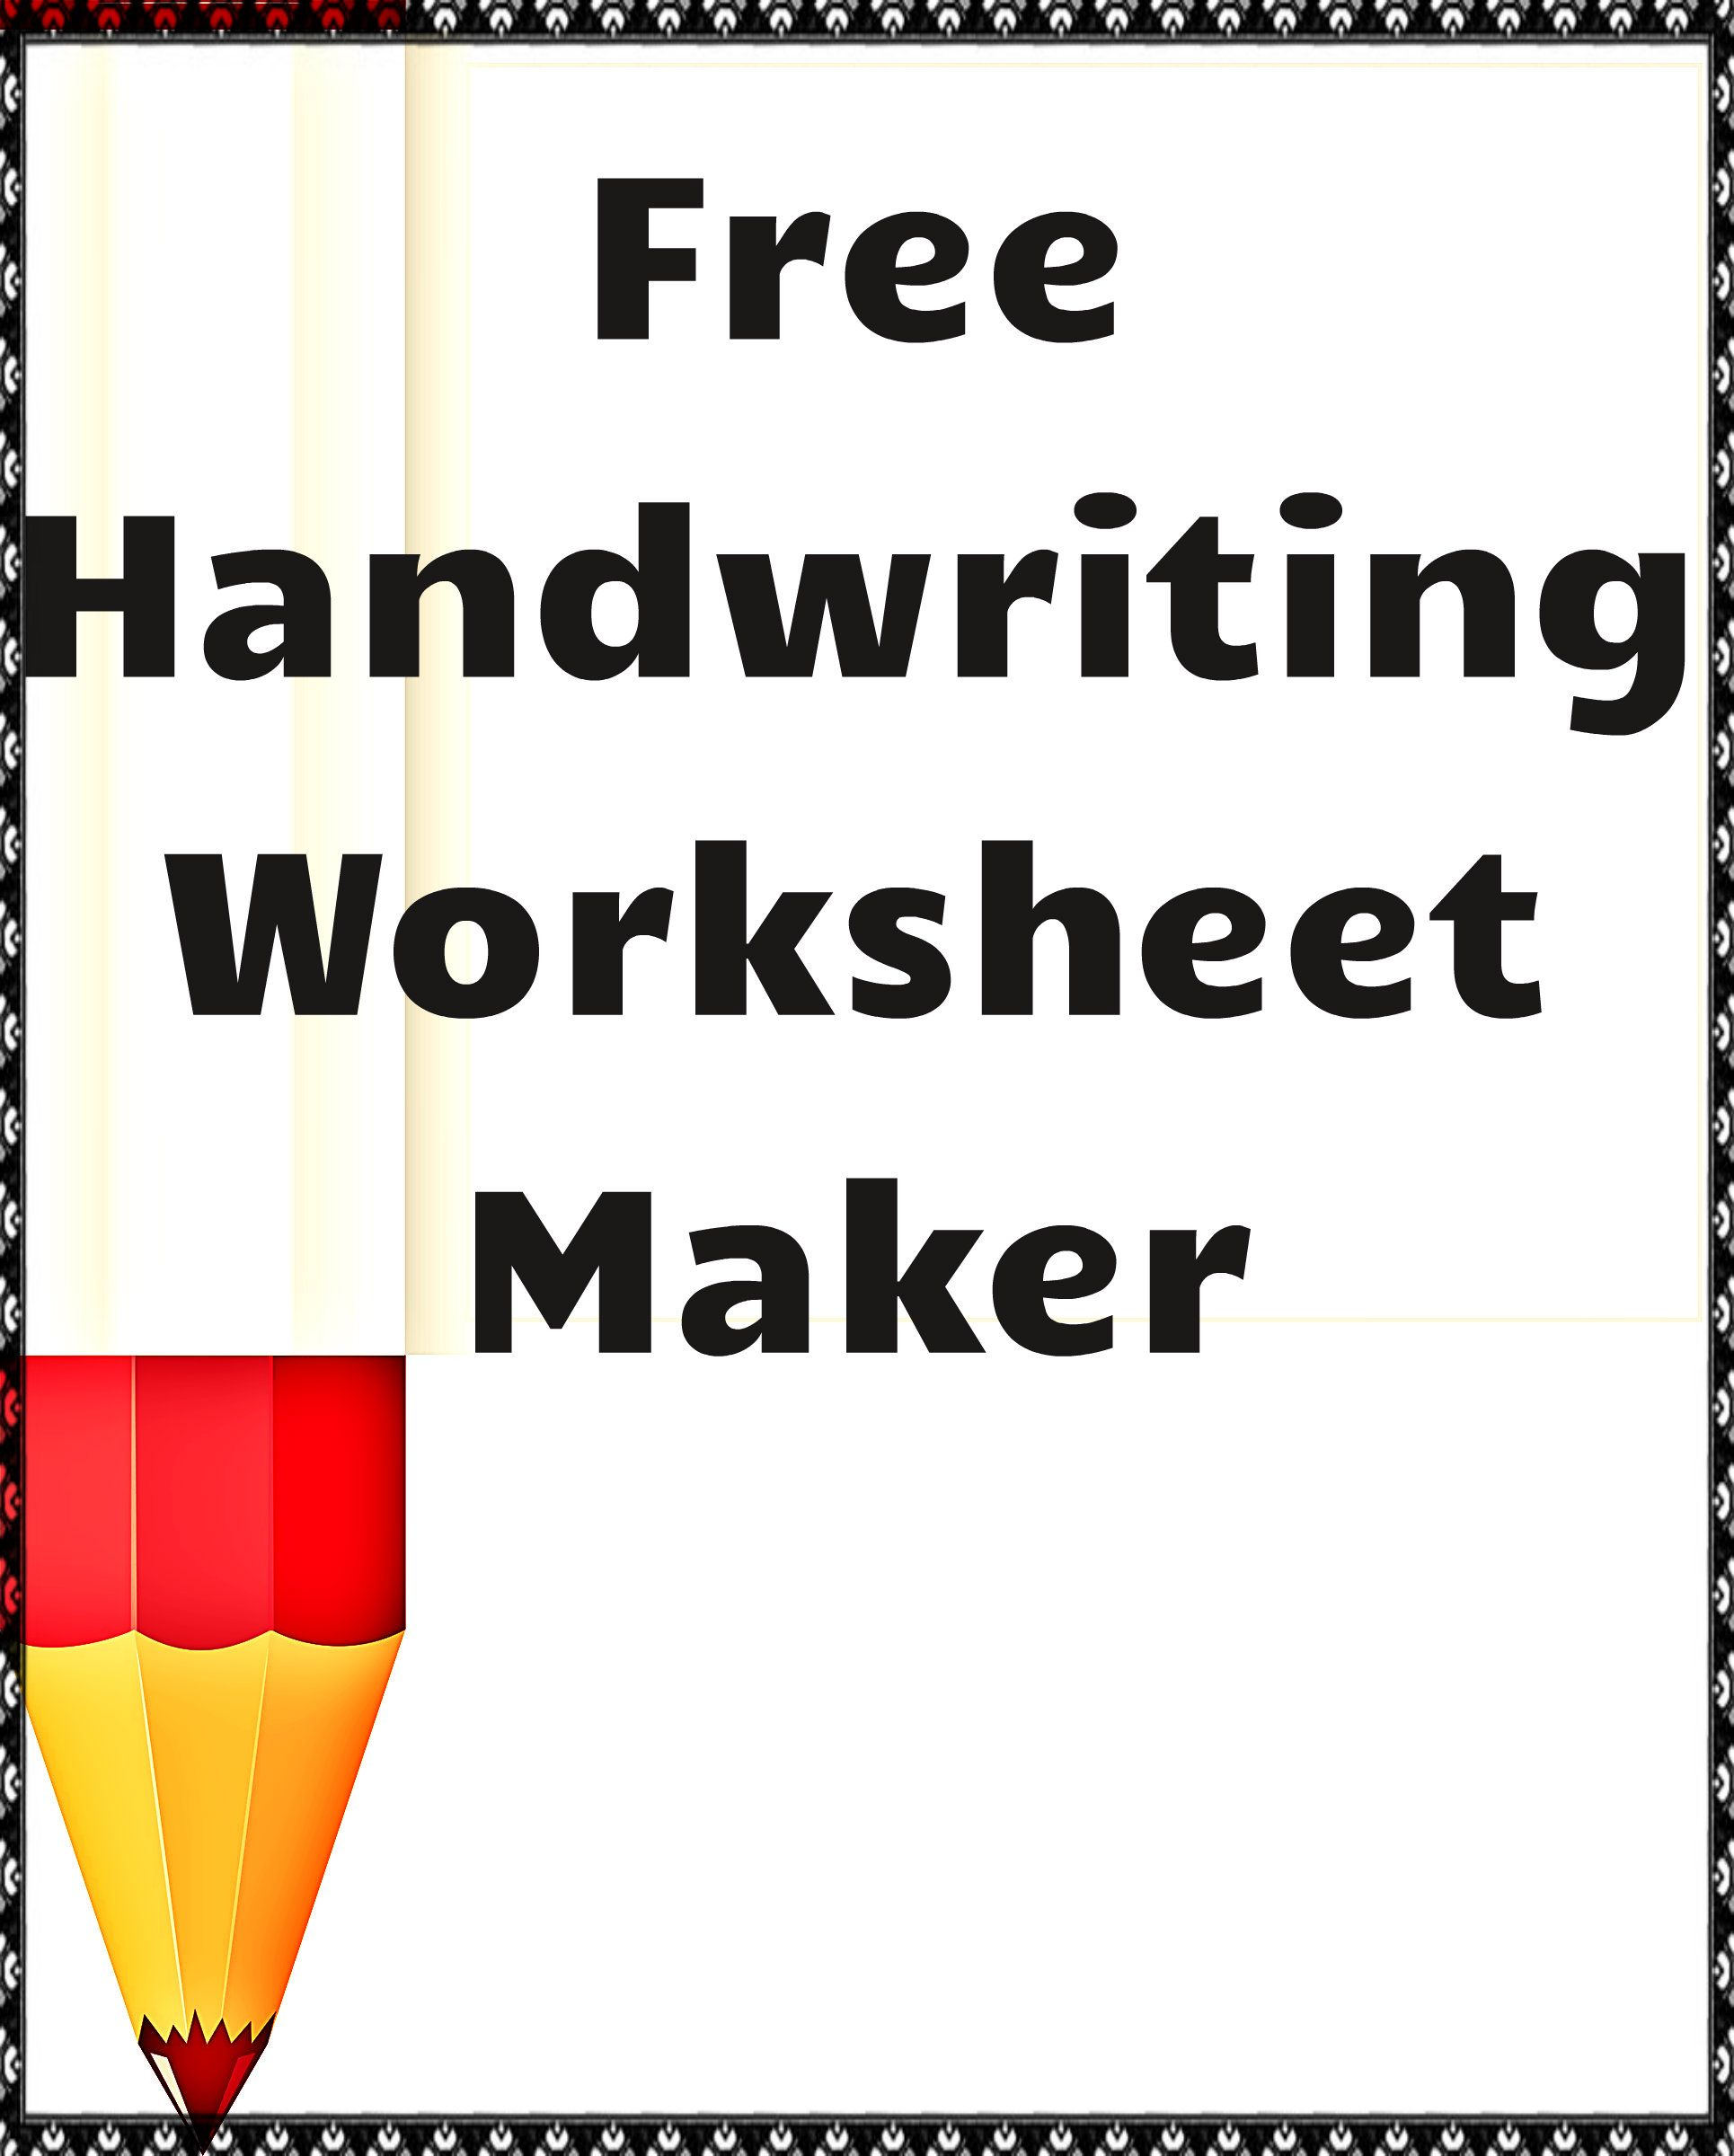 worksheet Matching Worksheet Maker free handwriting worksheet maker kindergartenklub com pinterest maker